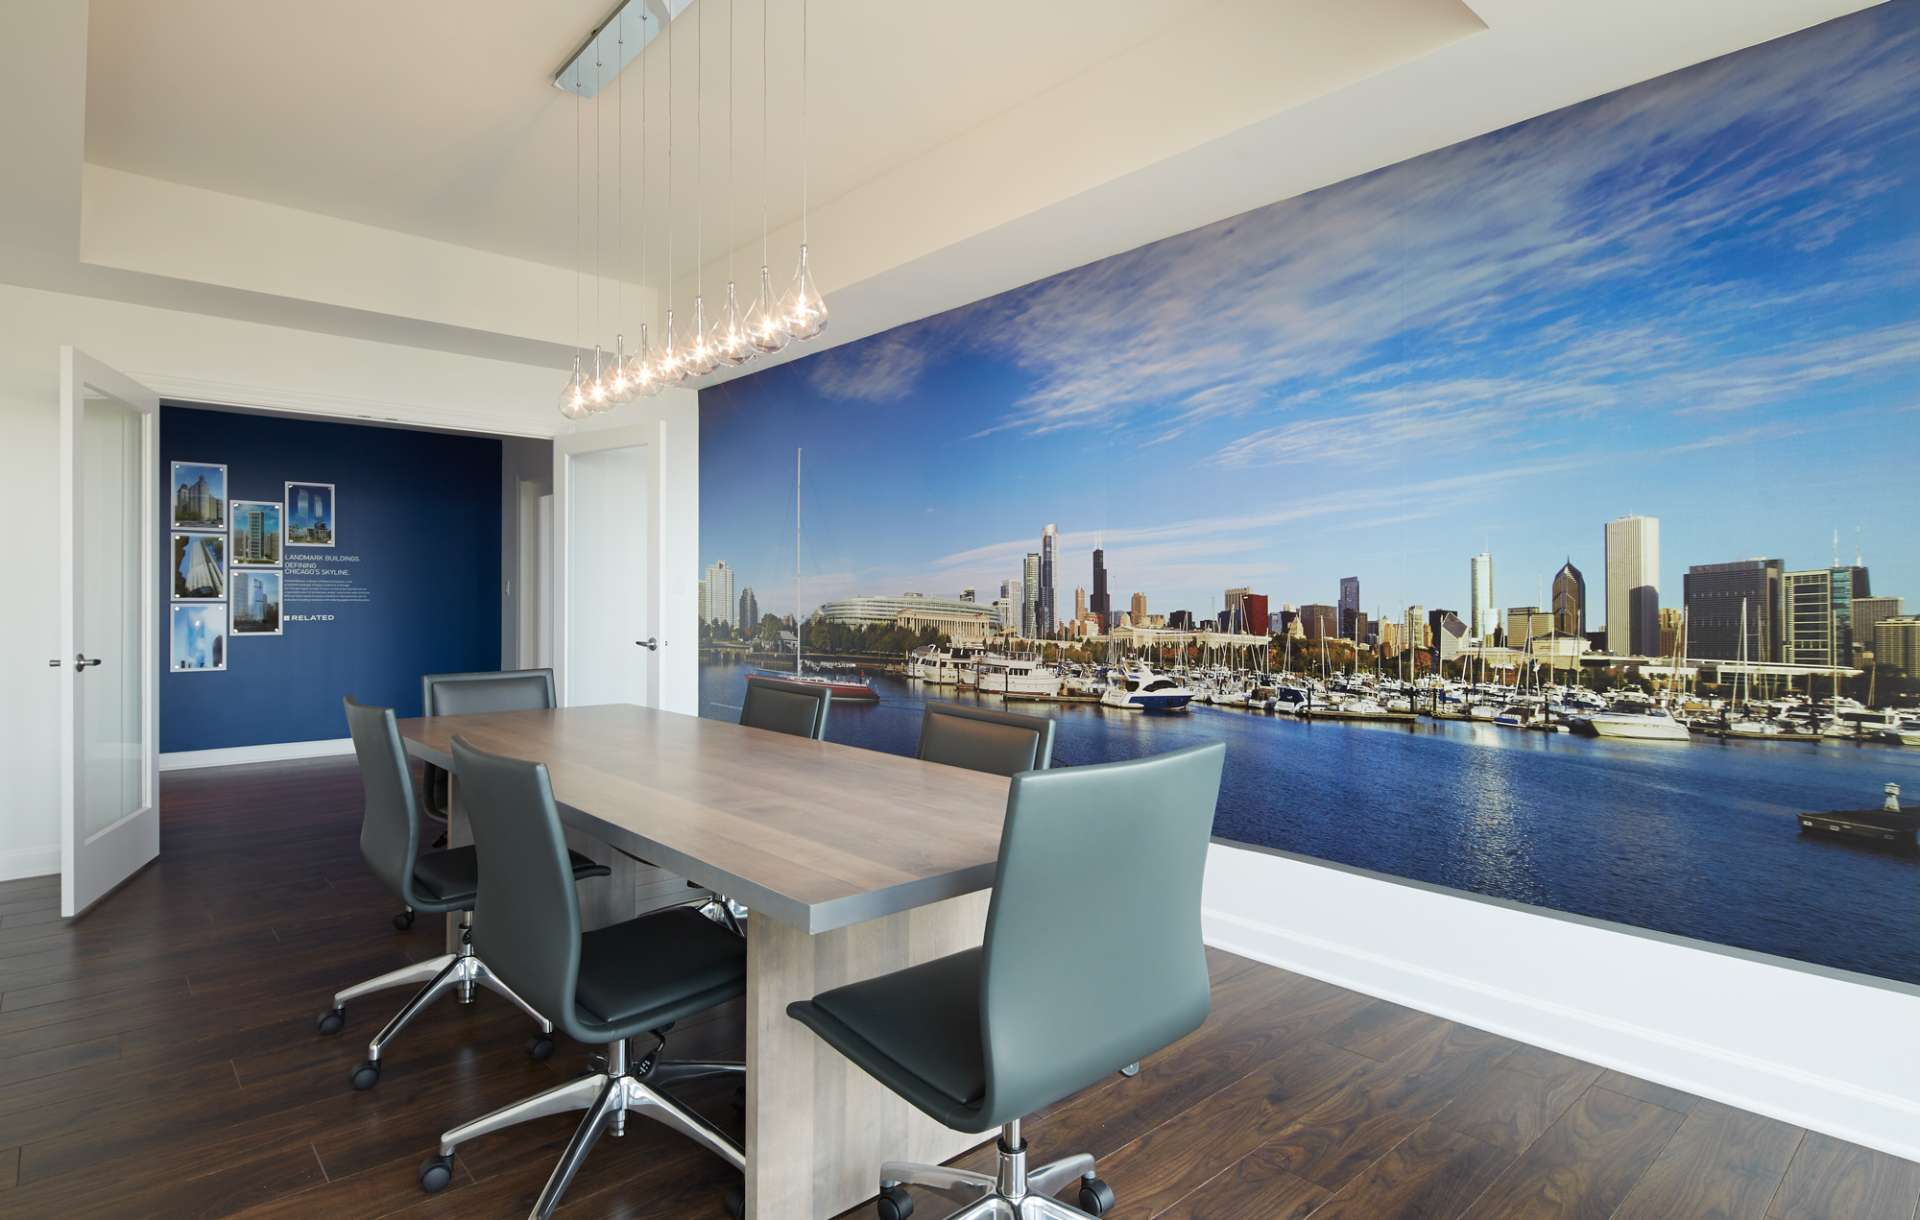 Real estate branding sales center designed for South Loop Luxury by Related